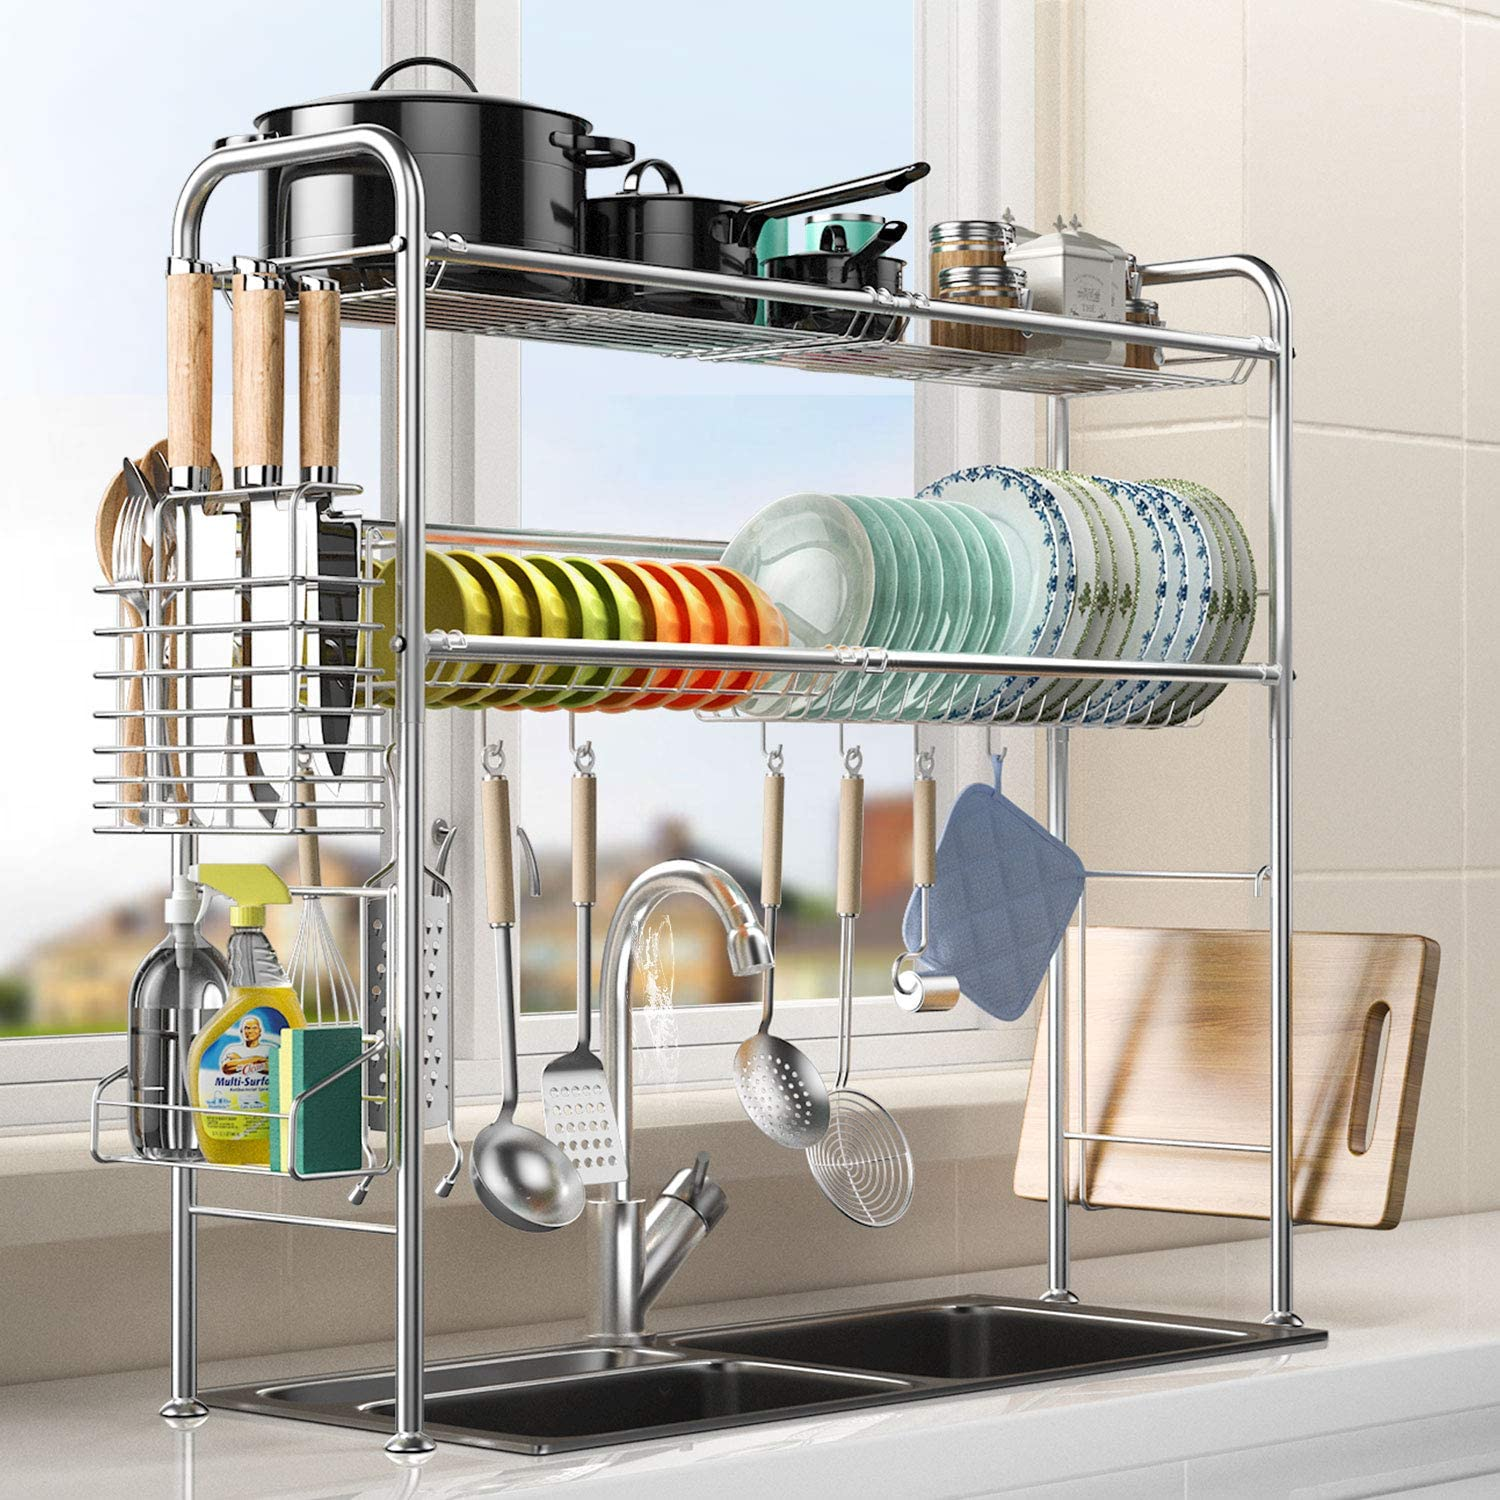 Denver Mall Over Sink Dish Drying Rack Kitchen Sta 2 304 High quality Tier